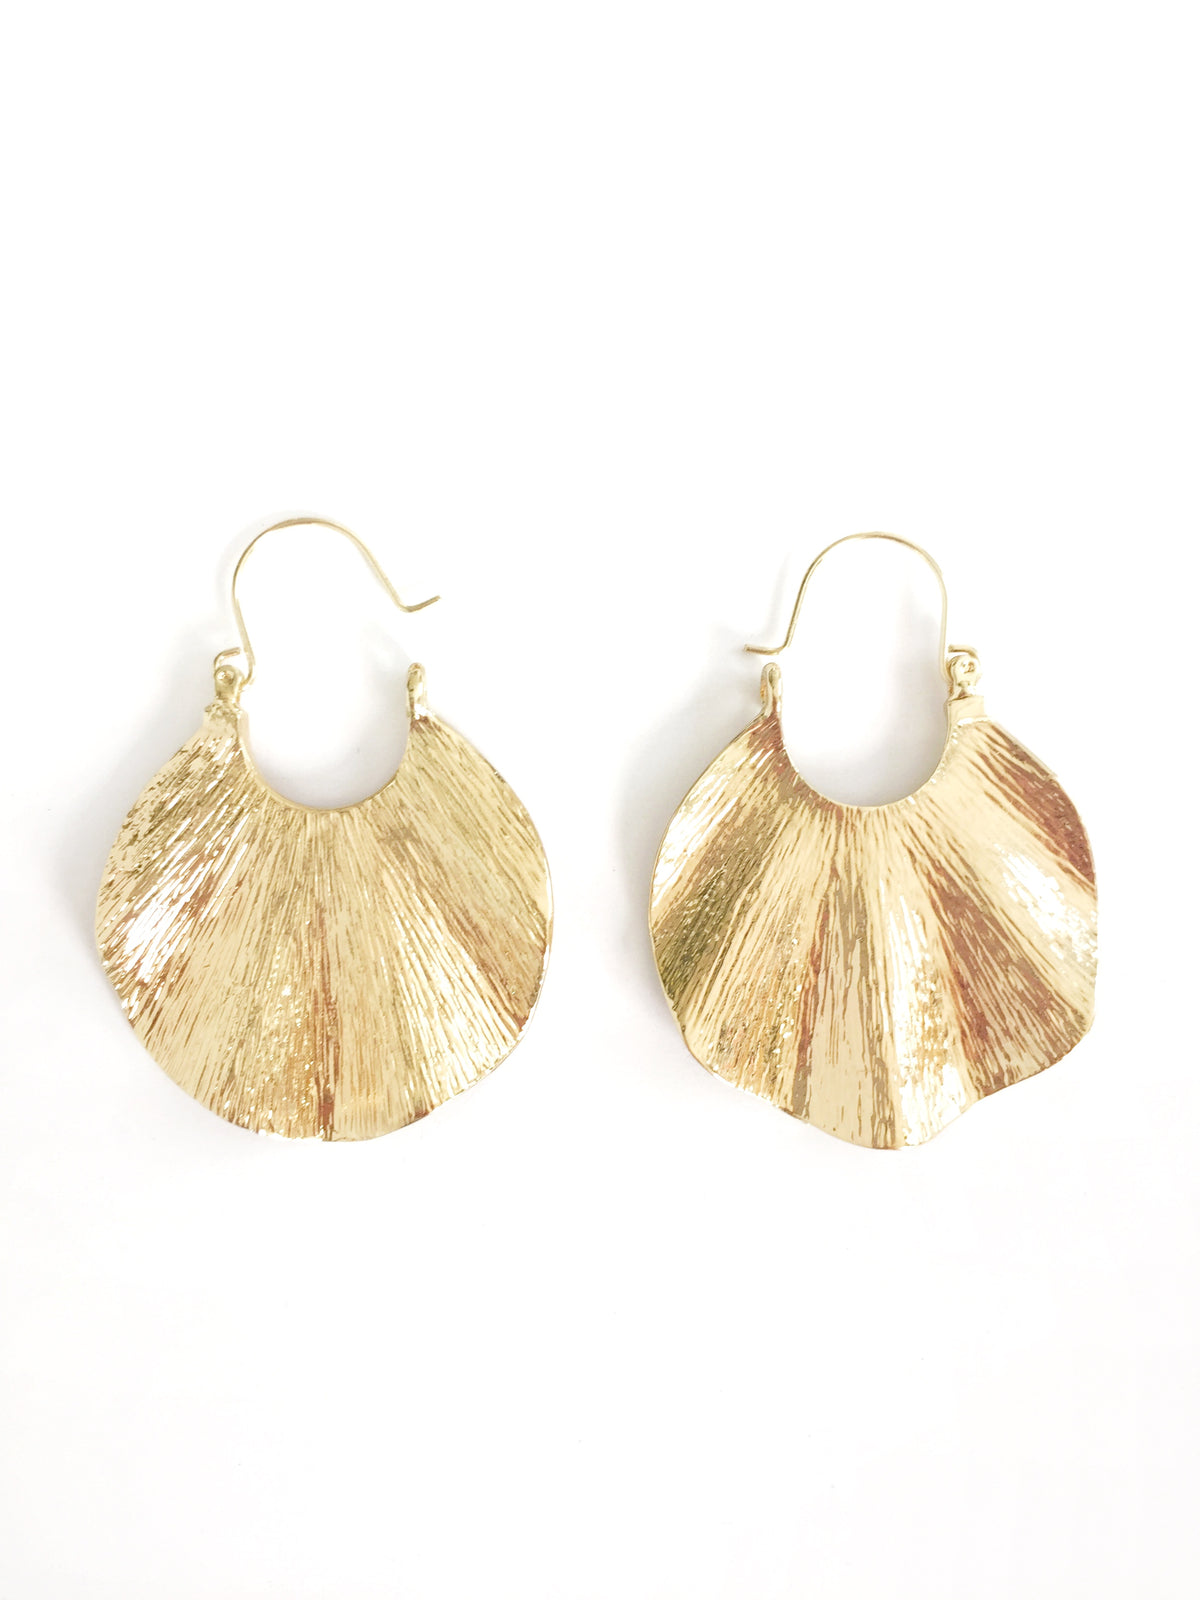 gold boho hoop earrings